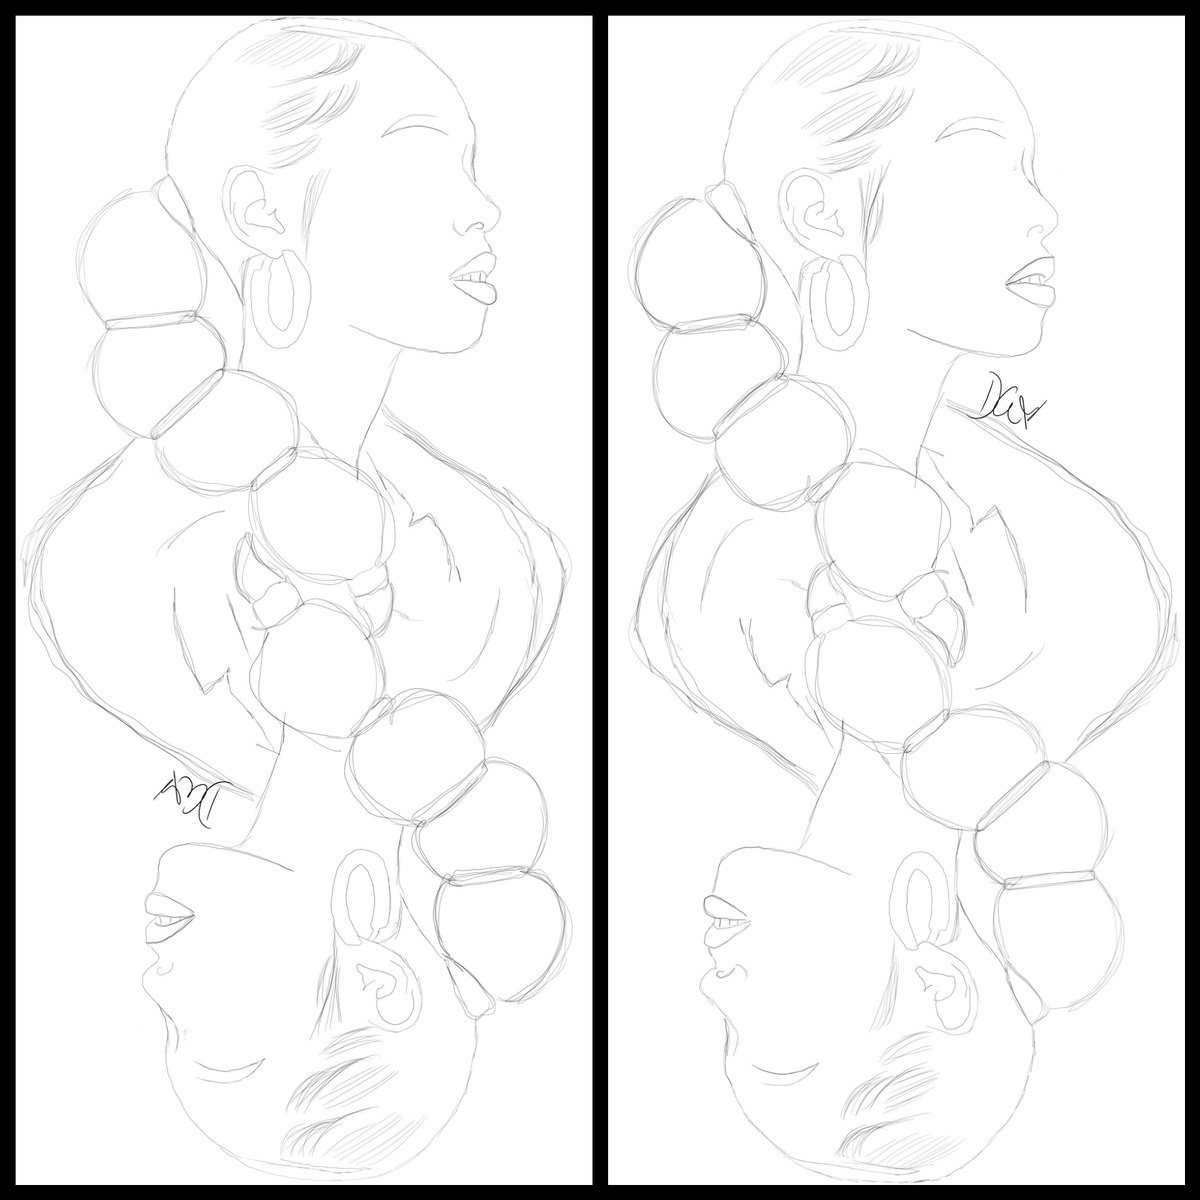 Rough sketches.   Trying to see if I can make magic happen.    #sketches #asketchaday #art #create #digitalart https://t.co/n5hUTYv8L4